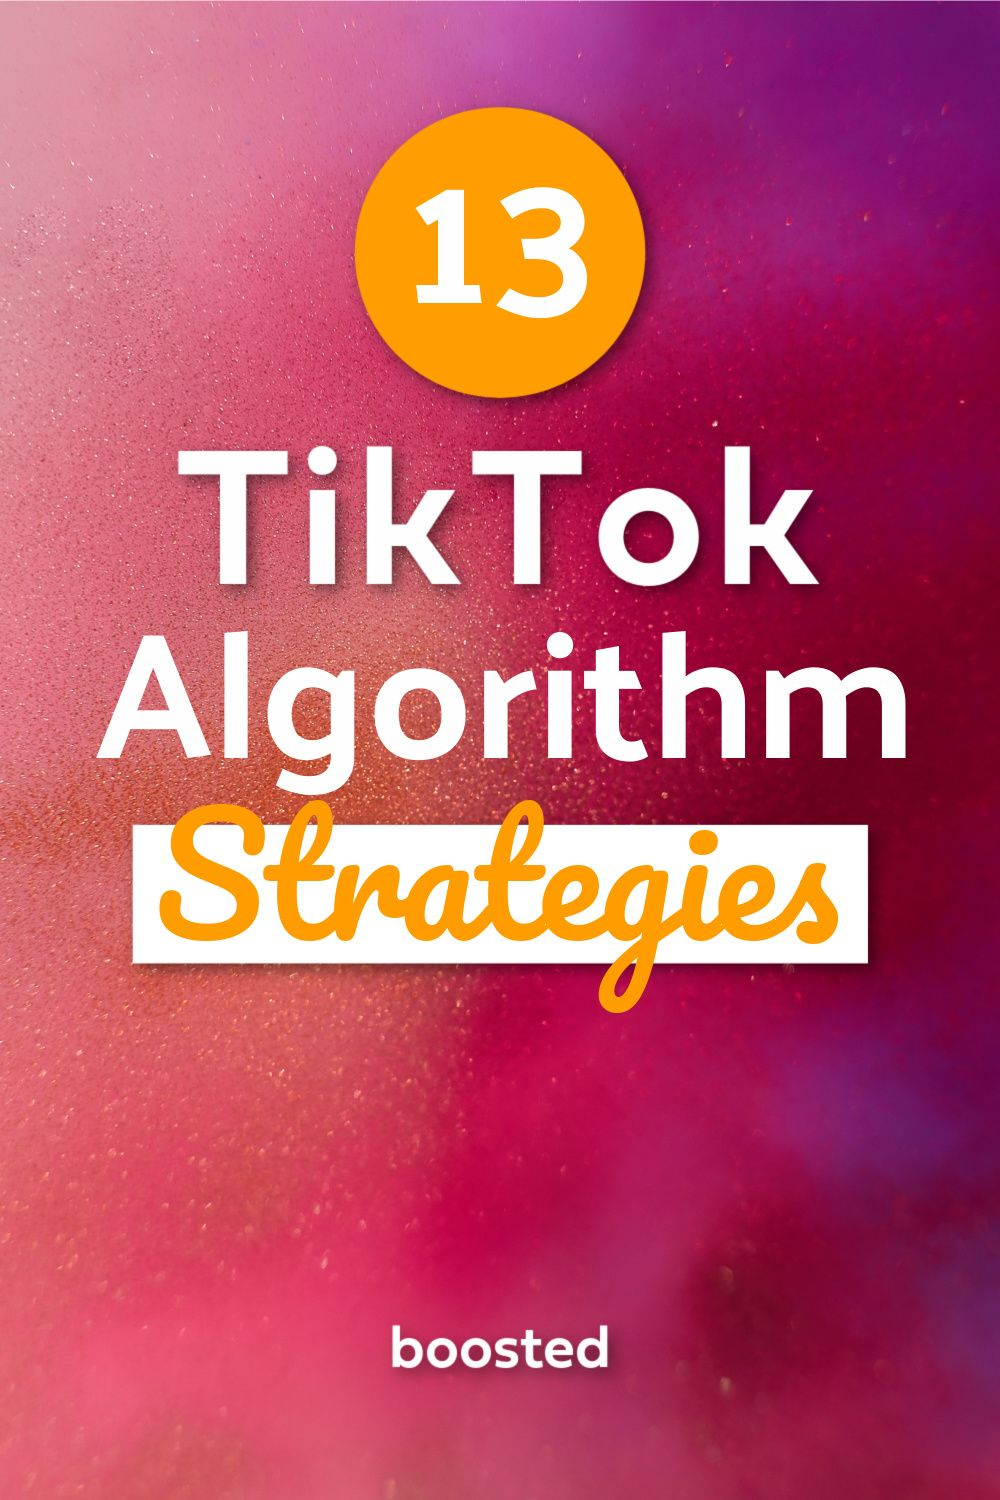 41 Tiktok Video Ideas For Small Businesses Boosted Video Marketing Strategies Business Marketing Plan Instagram Business Marketing